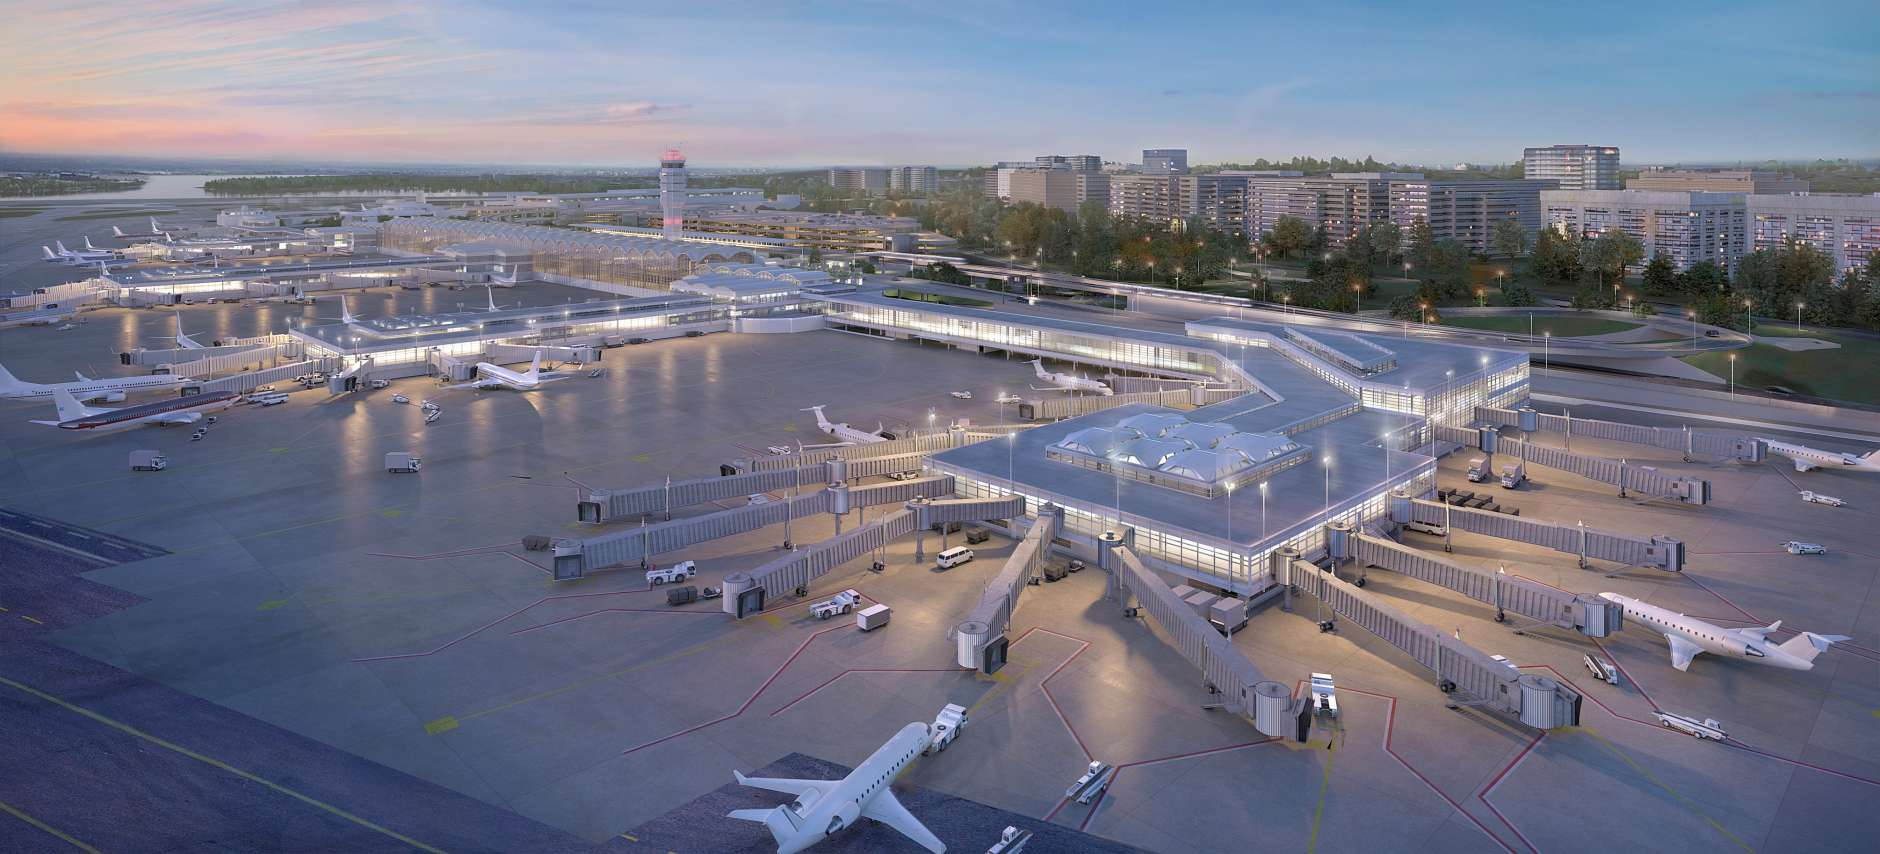 A rendering of the exterior of the planned new terminal at Reagan National Airport. (Courtesy MWAA)